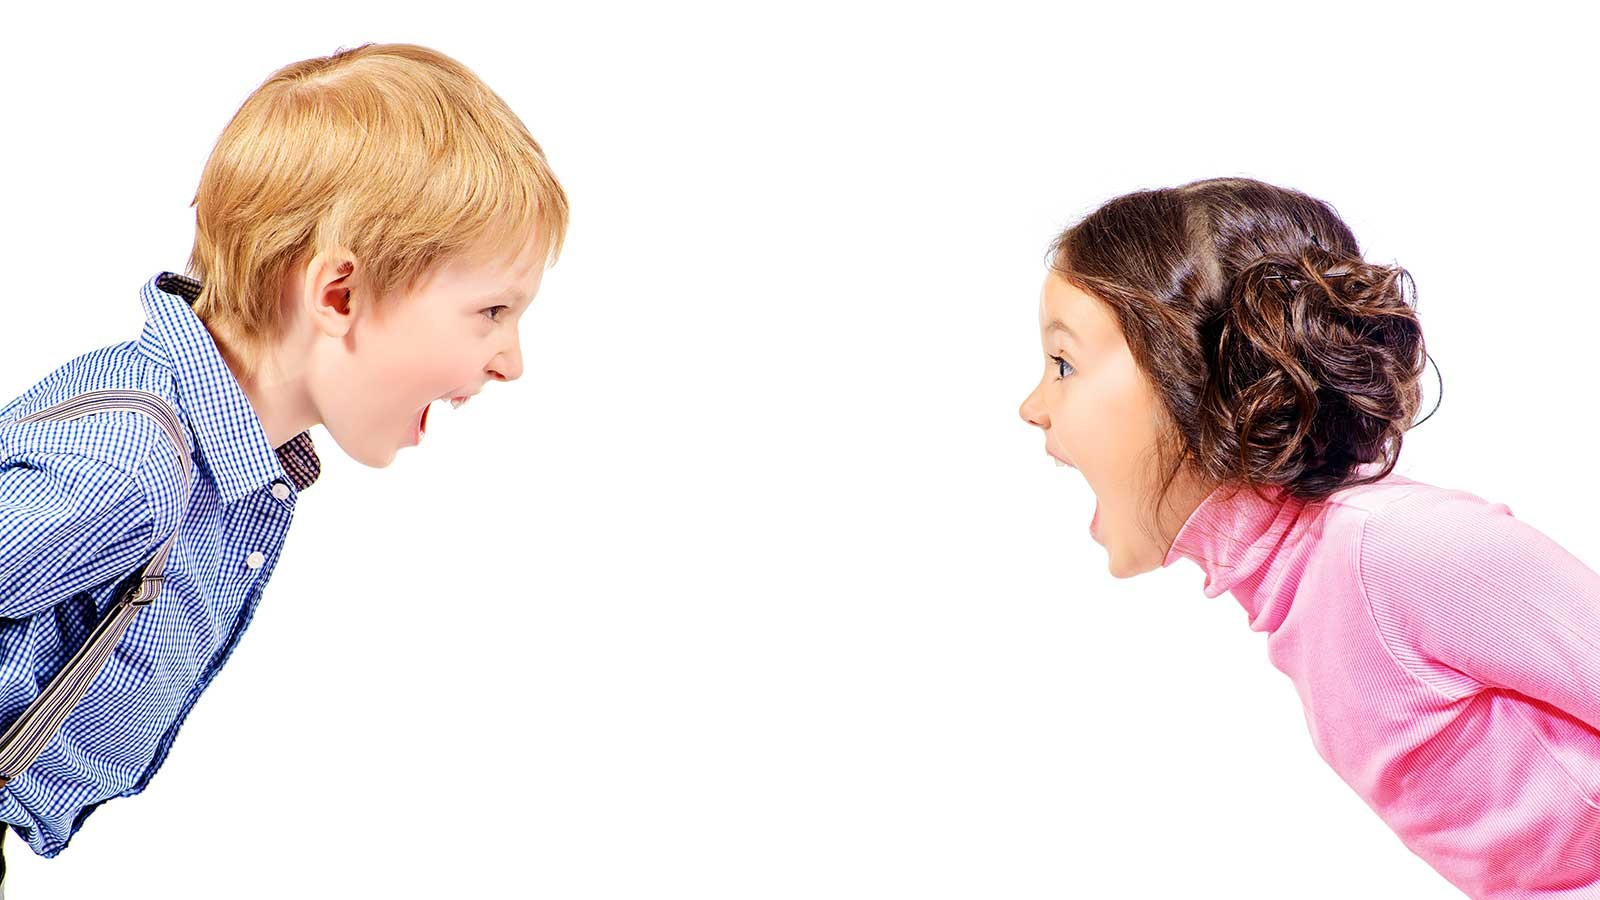 a young girl and boy yelling at each other.